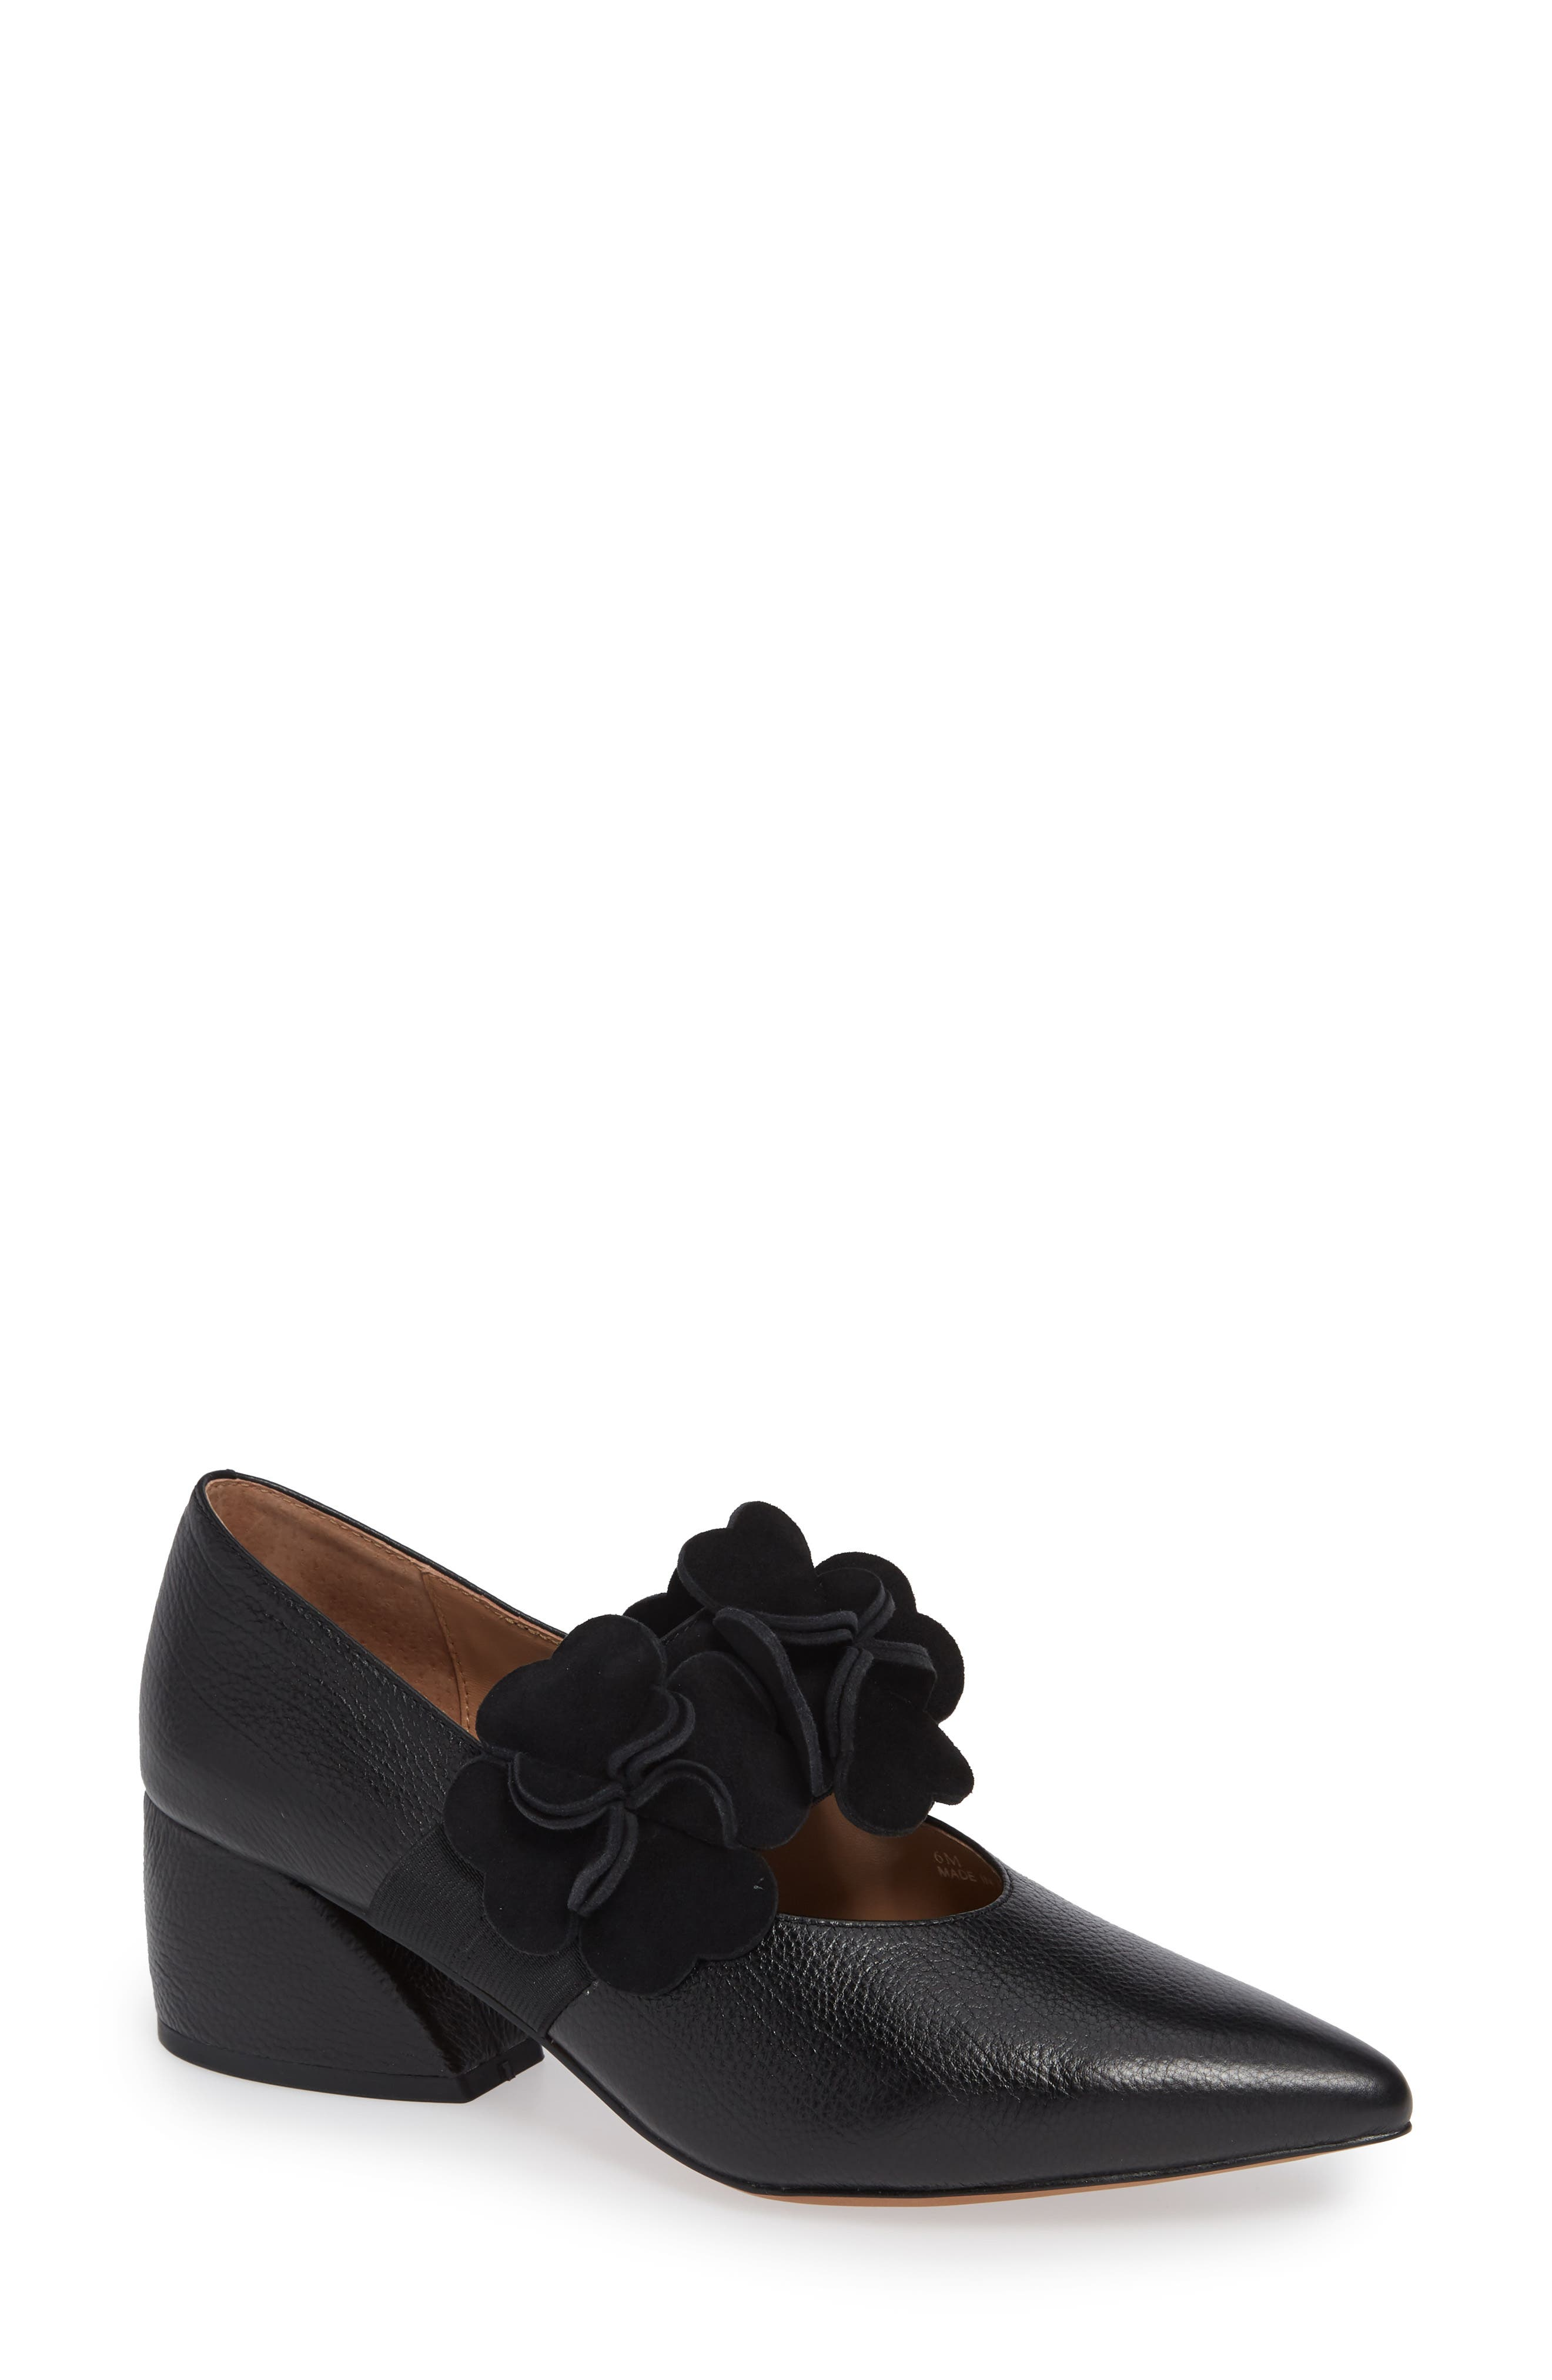 Biarritz Mary Jane Pump, Main, color, BLACK LEATHER